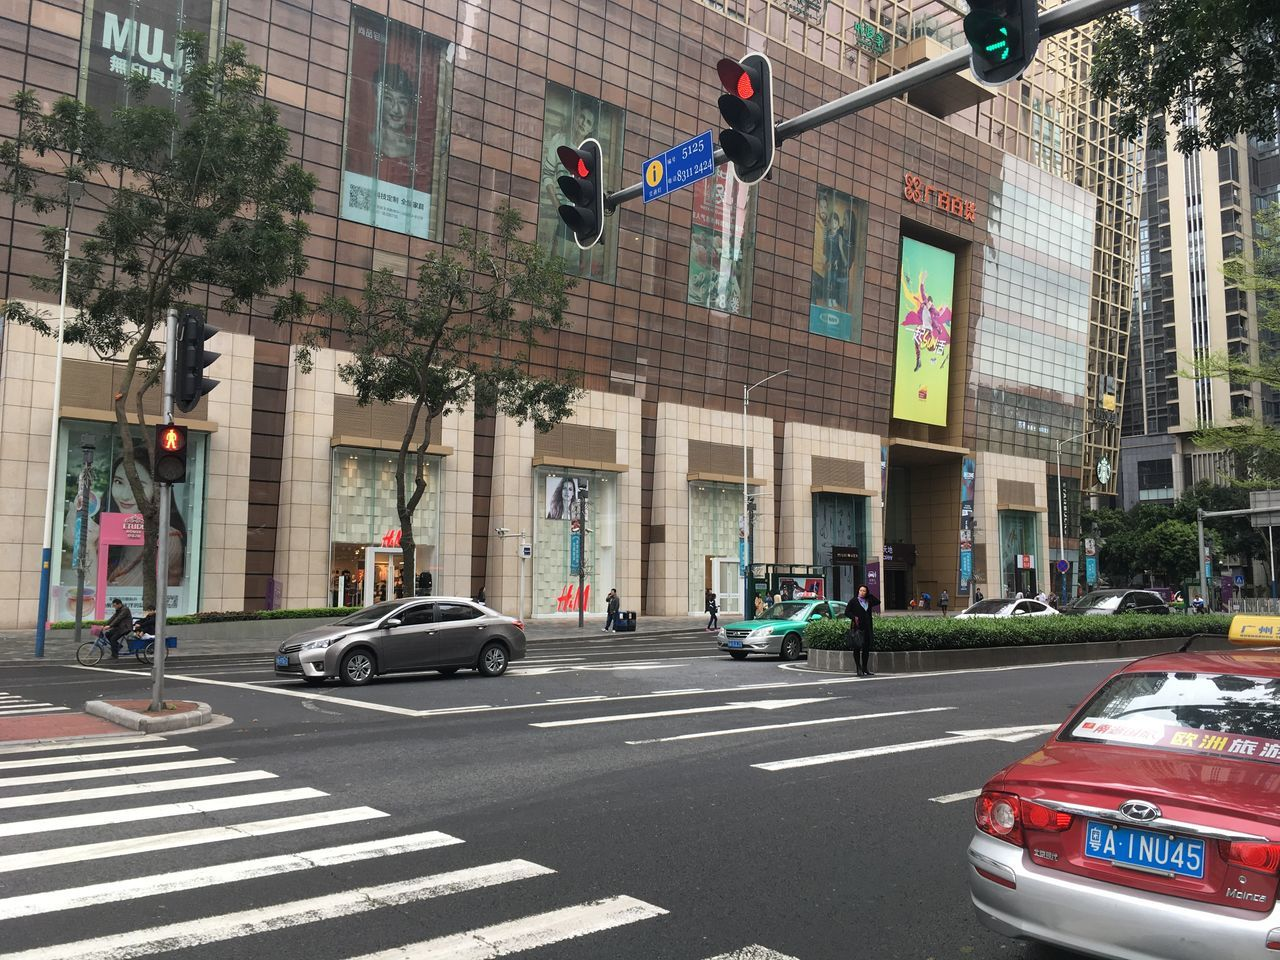 Architecture Building Exterior Built Structure Car City City Life City Street Day Guangzhou No People Outdoors Red Light Road Road Sign Skyscraper Stoplight Street Transportation Travel Destinations Tree Yellow Taxi